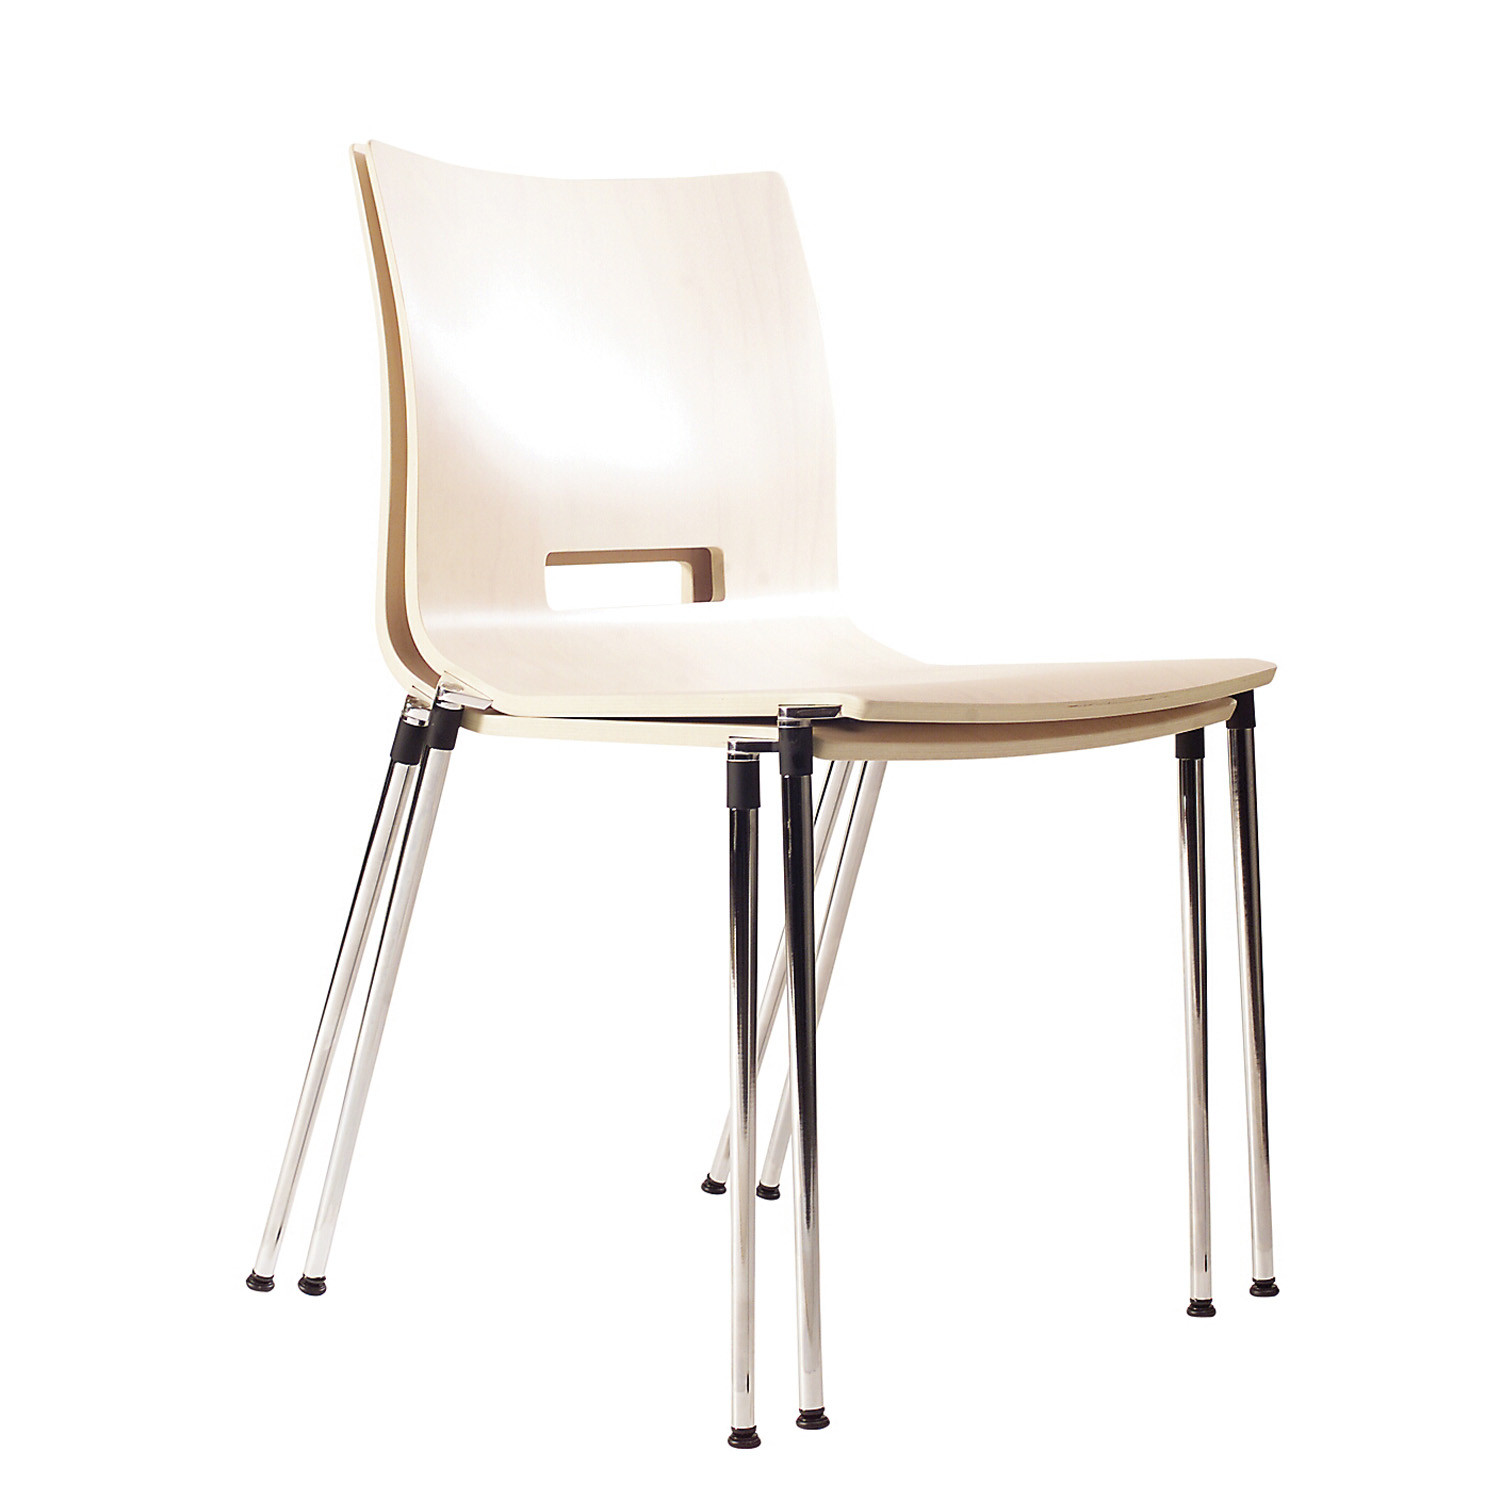 Sala Chair by Zuco